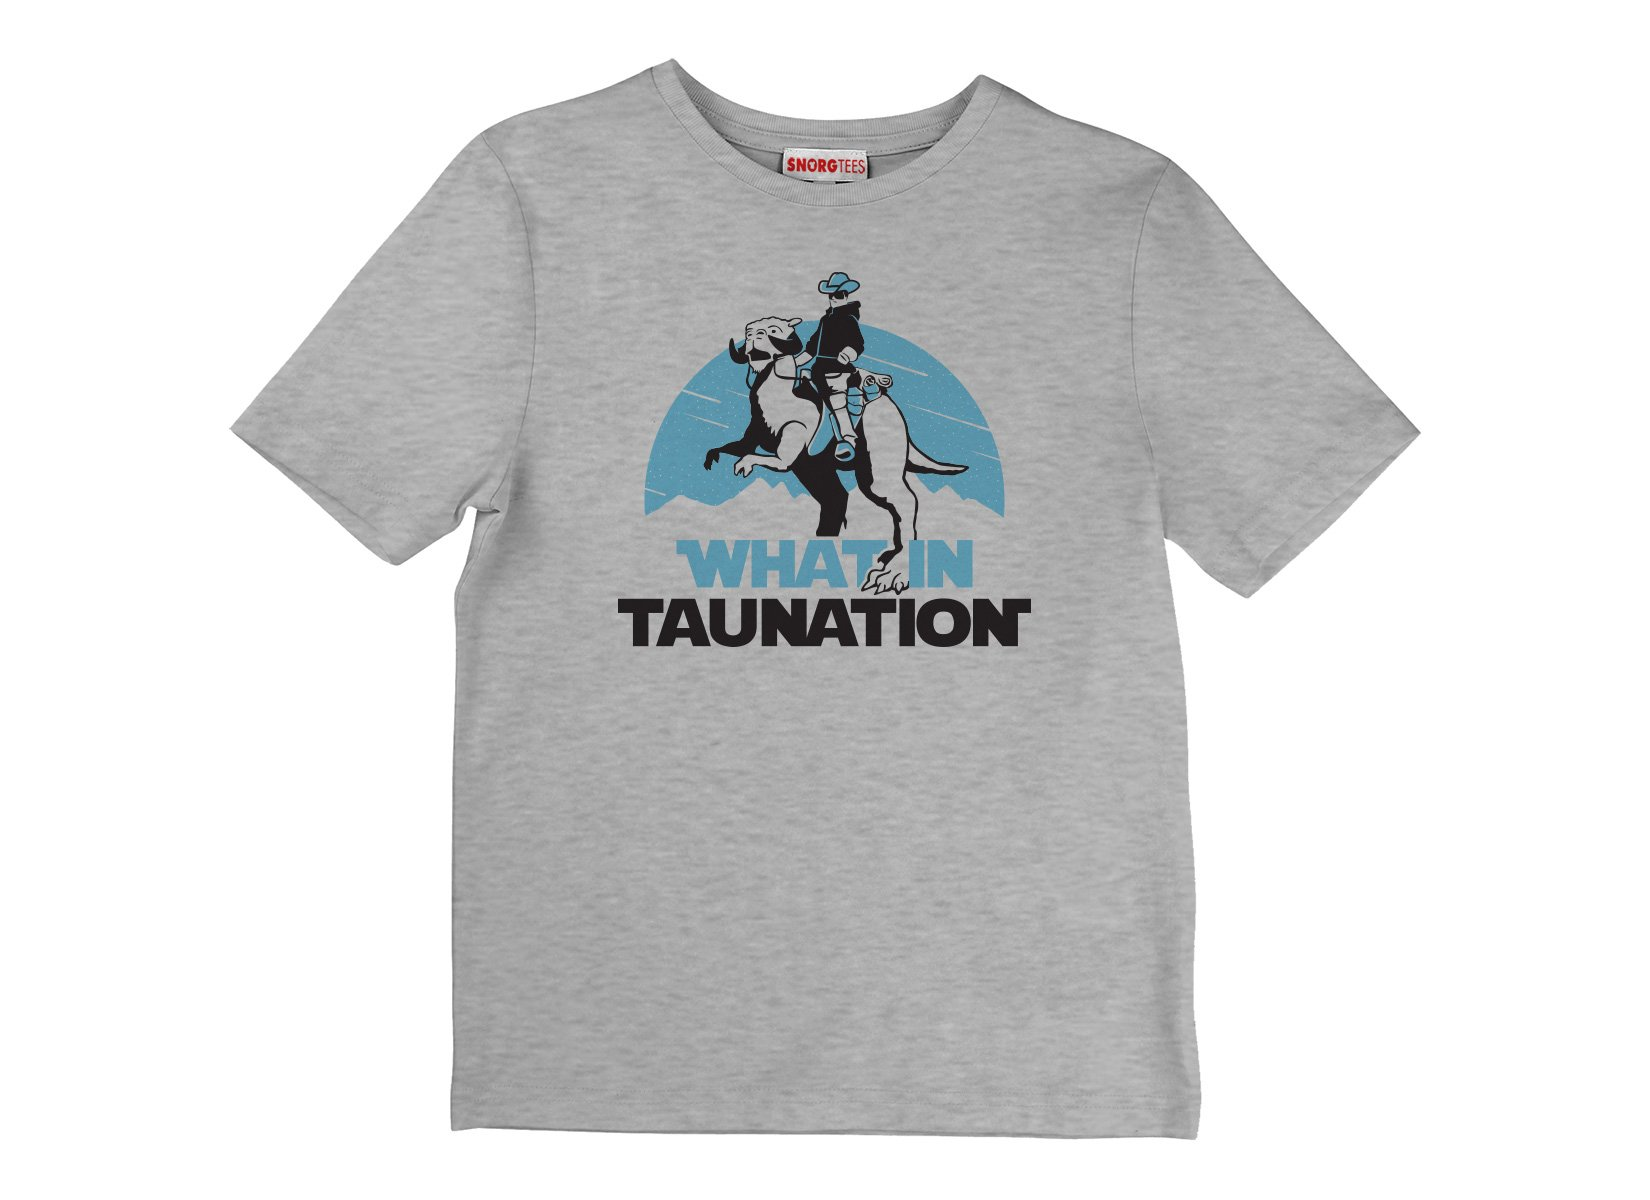 What In Taunation on Kids T-Shirt